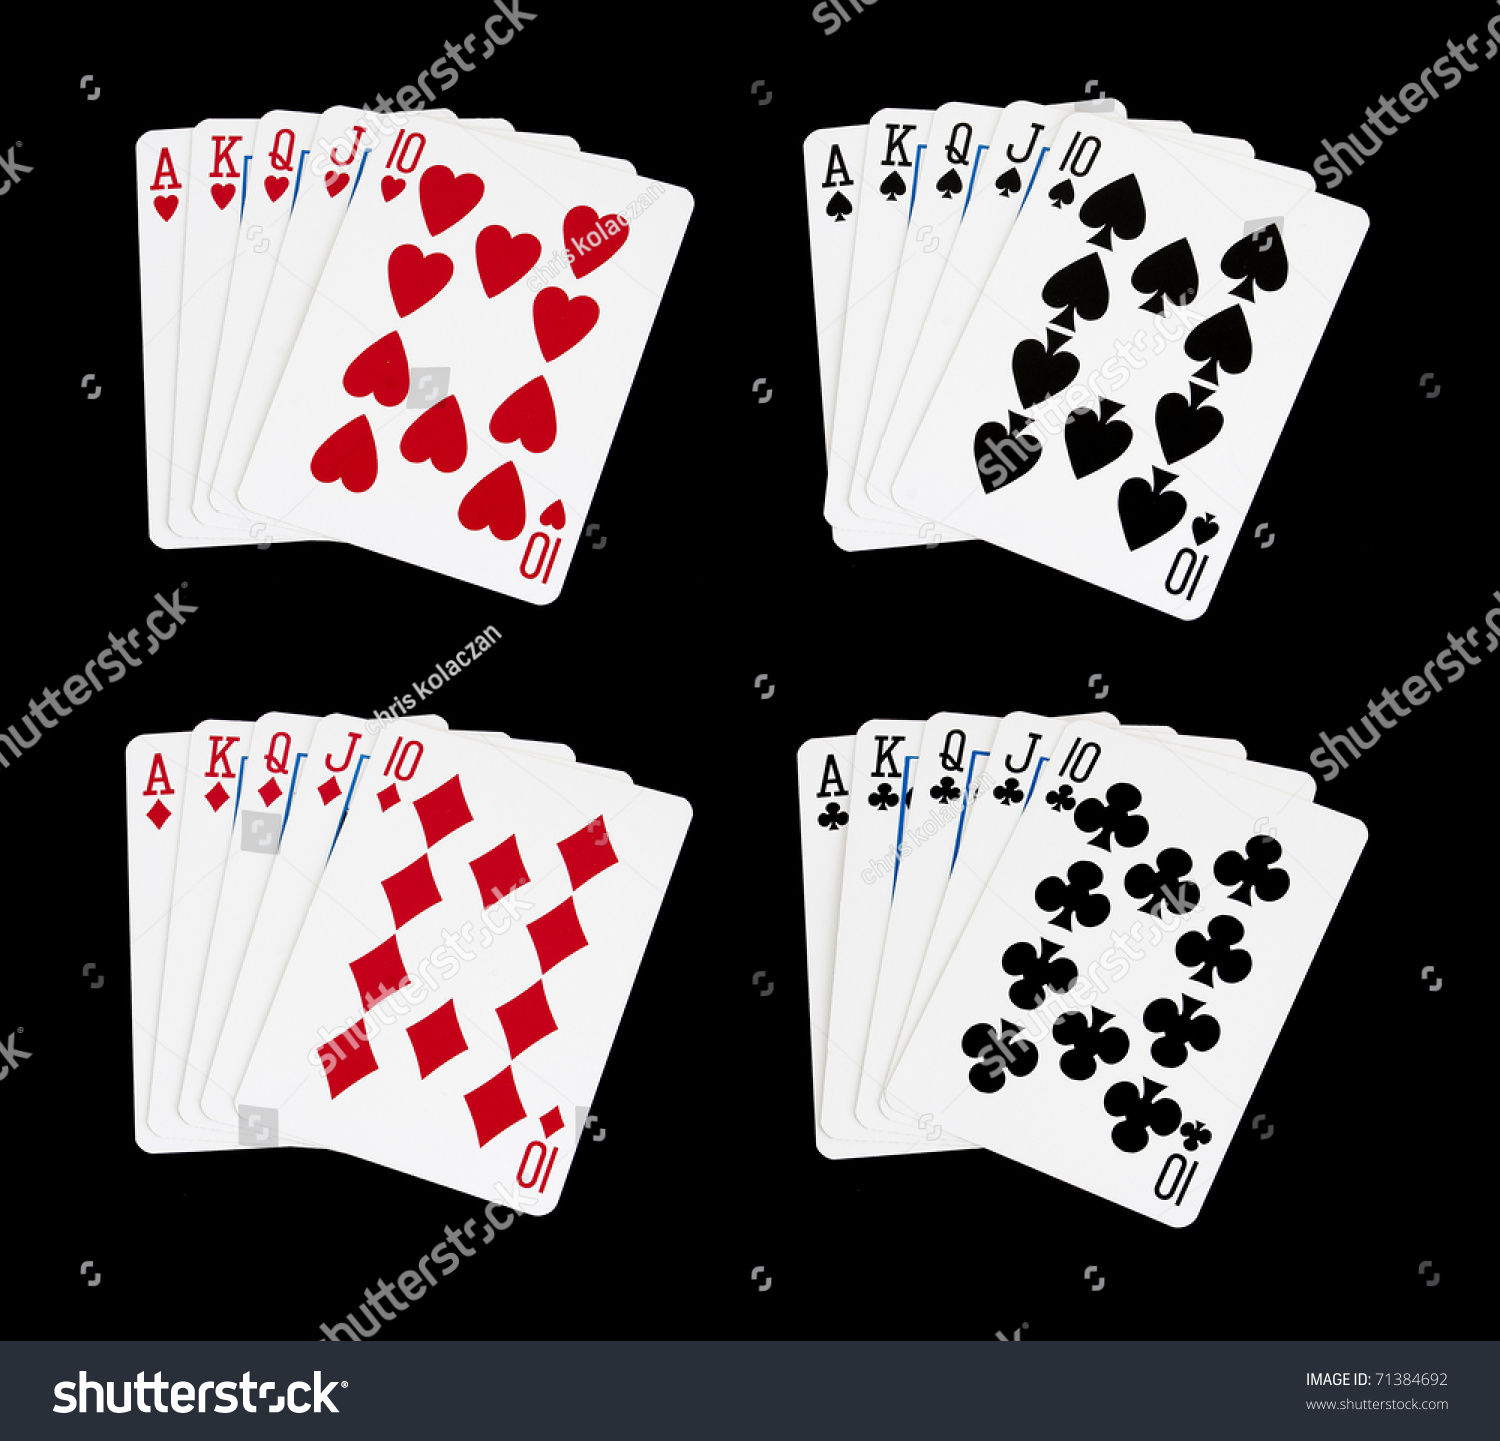 Royal Flush Best Hand Possible Poker Stock Photo & Image (Royalty ...